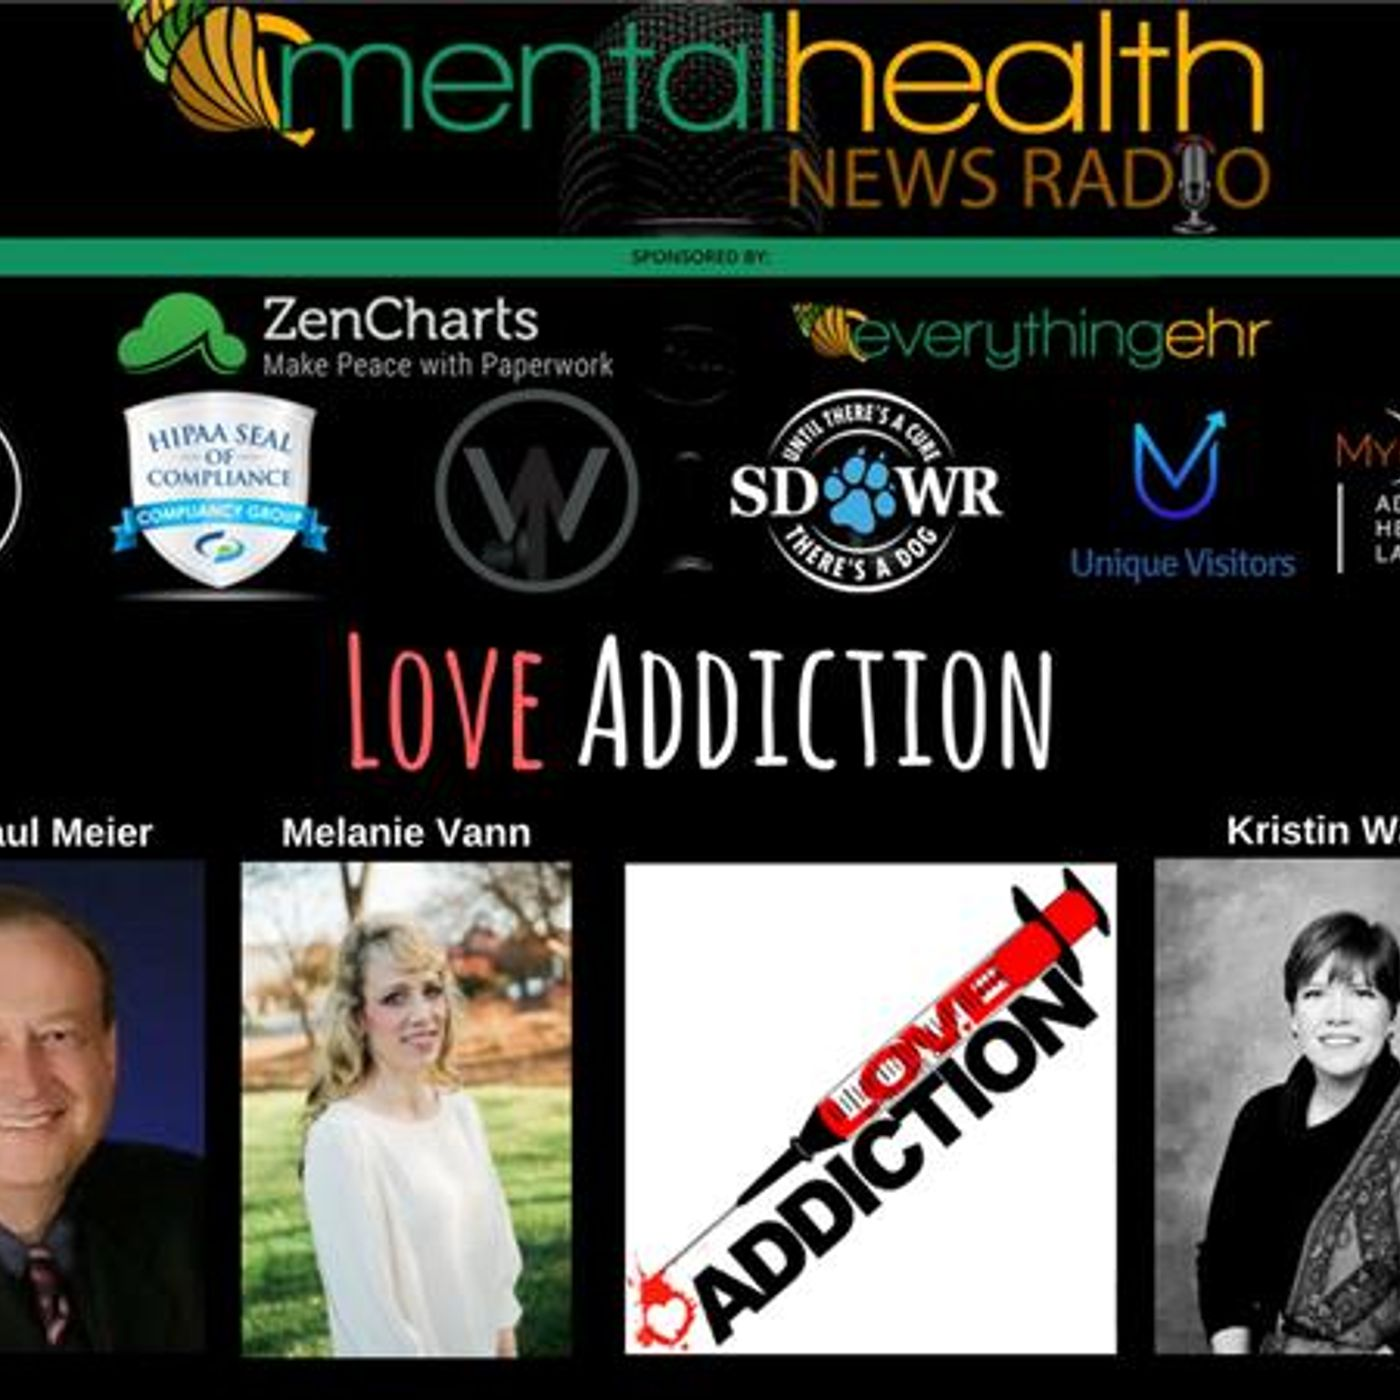 Mental Health News Radio - Round Table Discussions with Dr. Paul Meier: Love Addiction